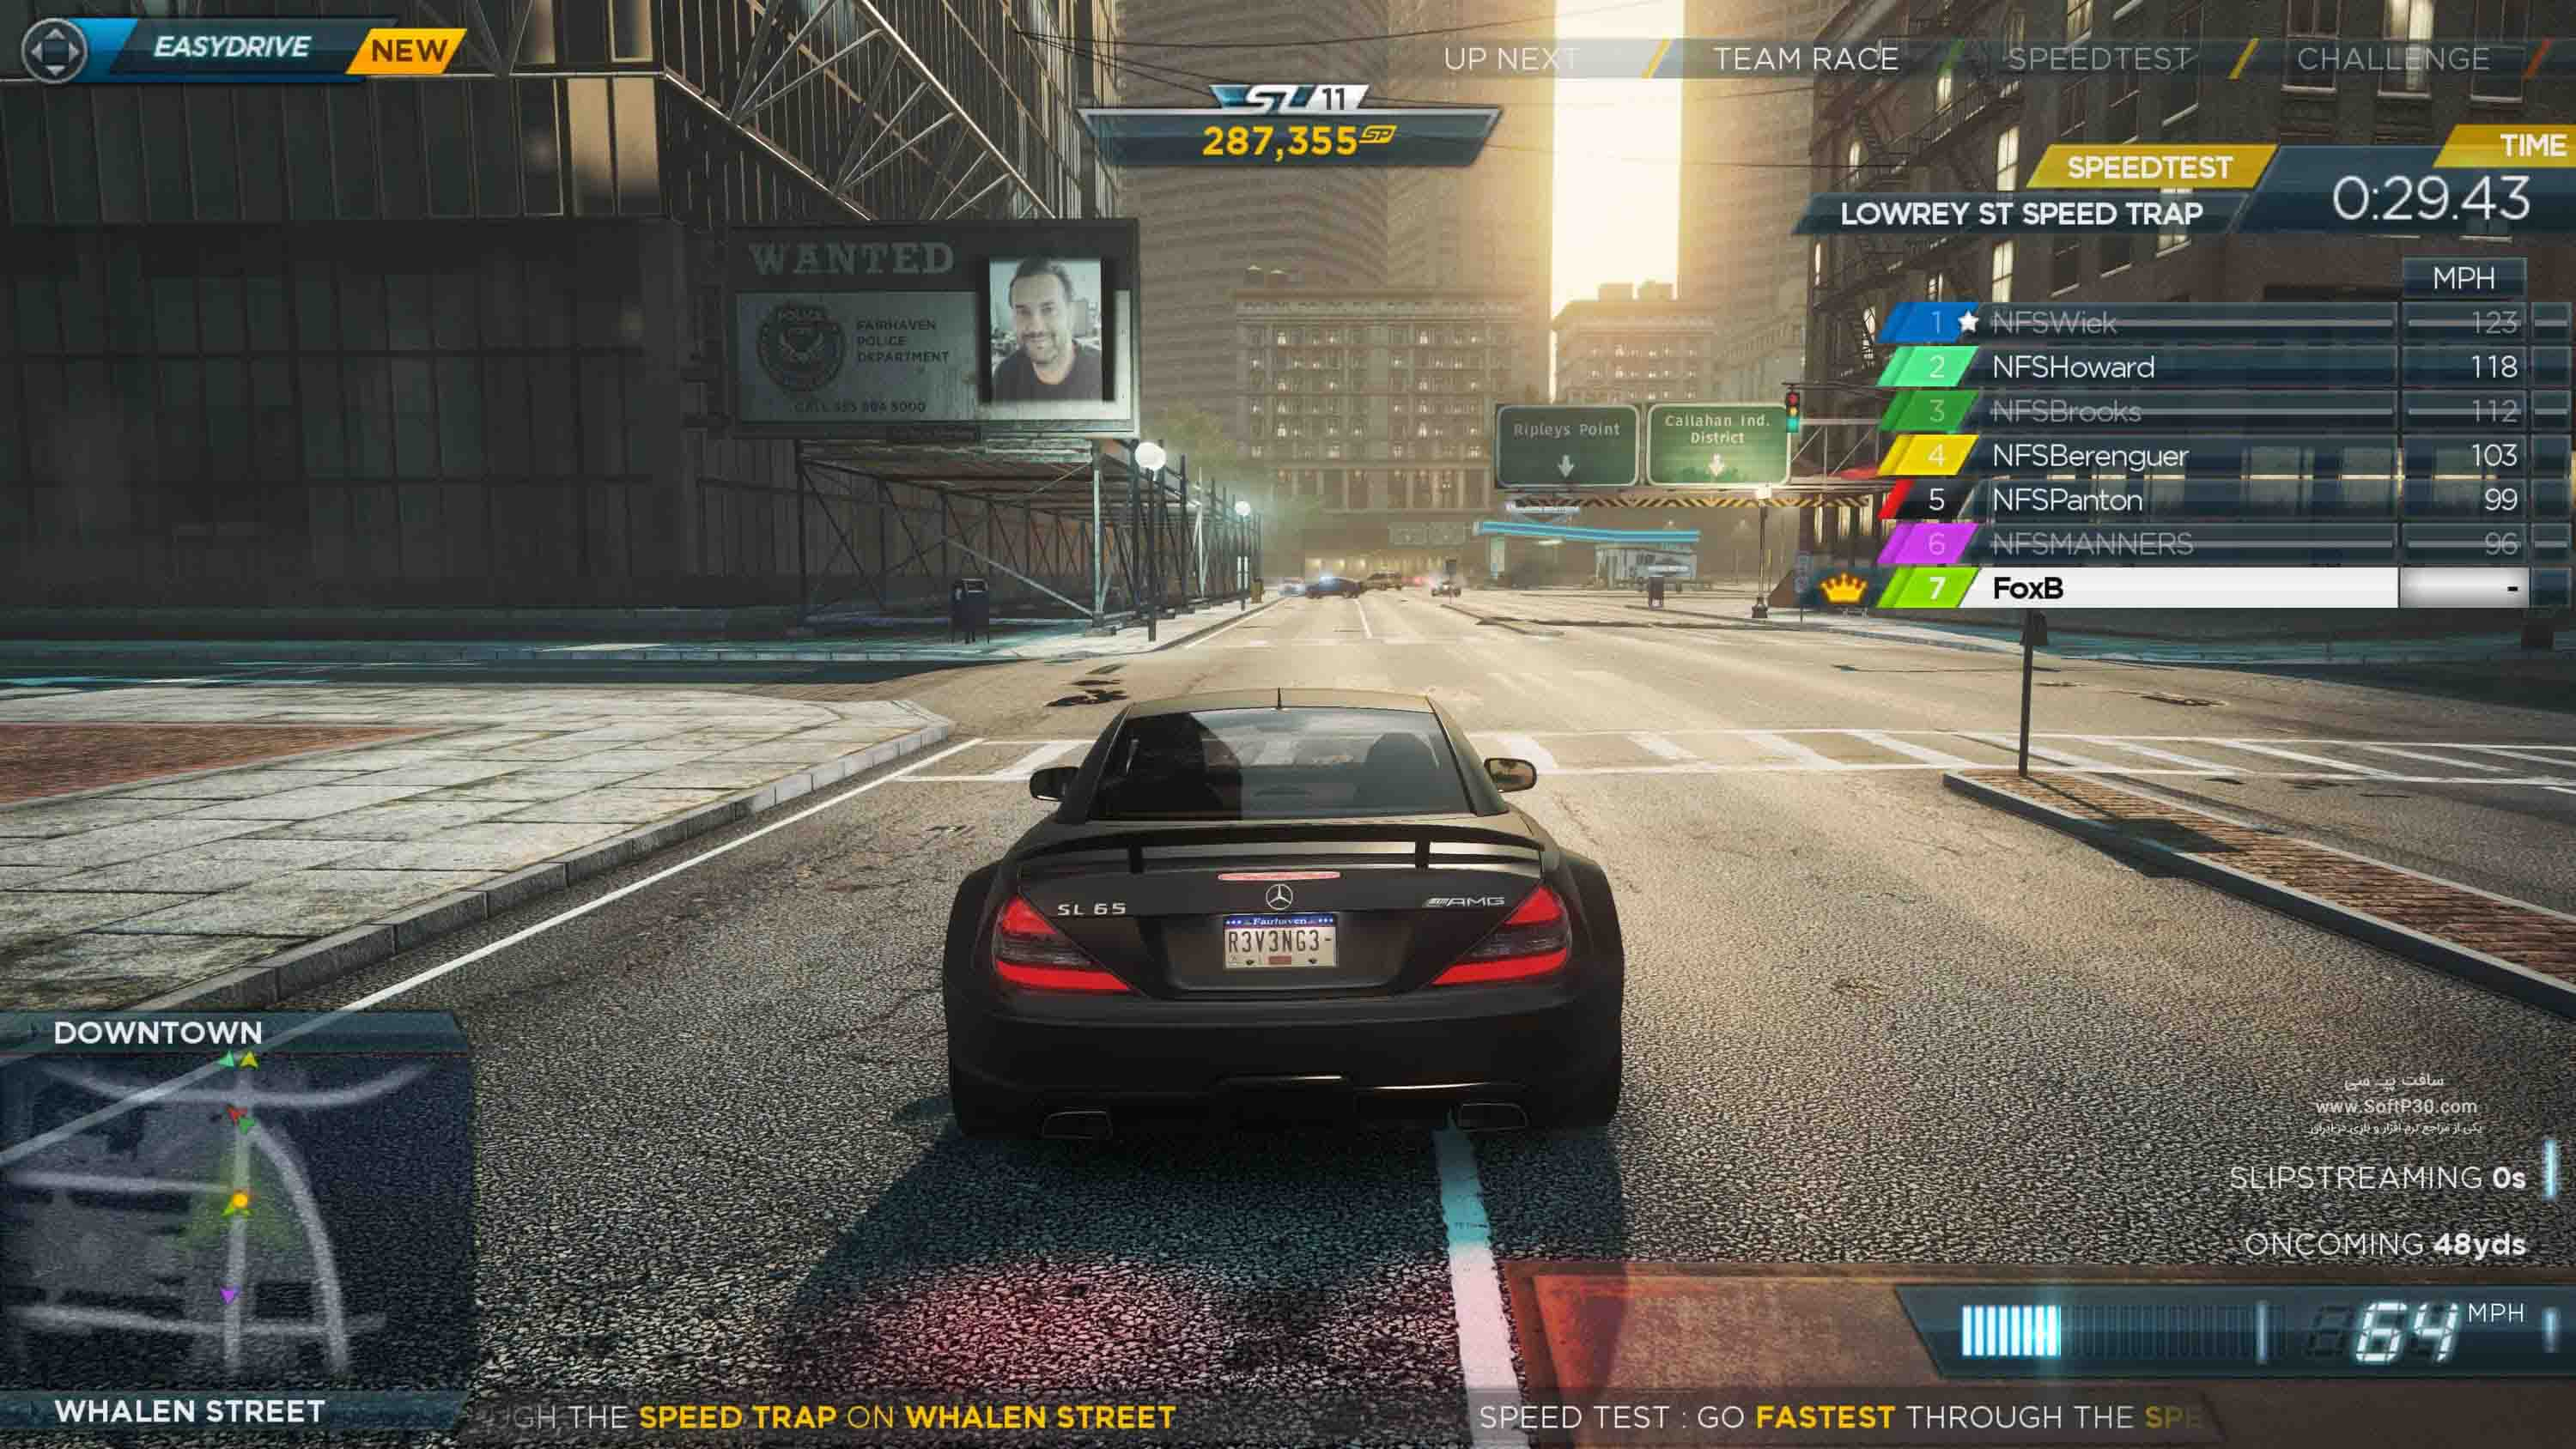 need for speed most wanted xbox360 need for speed most wanted xbox360 Need For Speed Most Wanted Xbox360 Need For Speed Most Wanted Xbox360